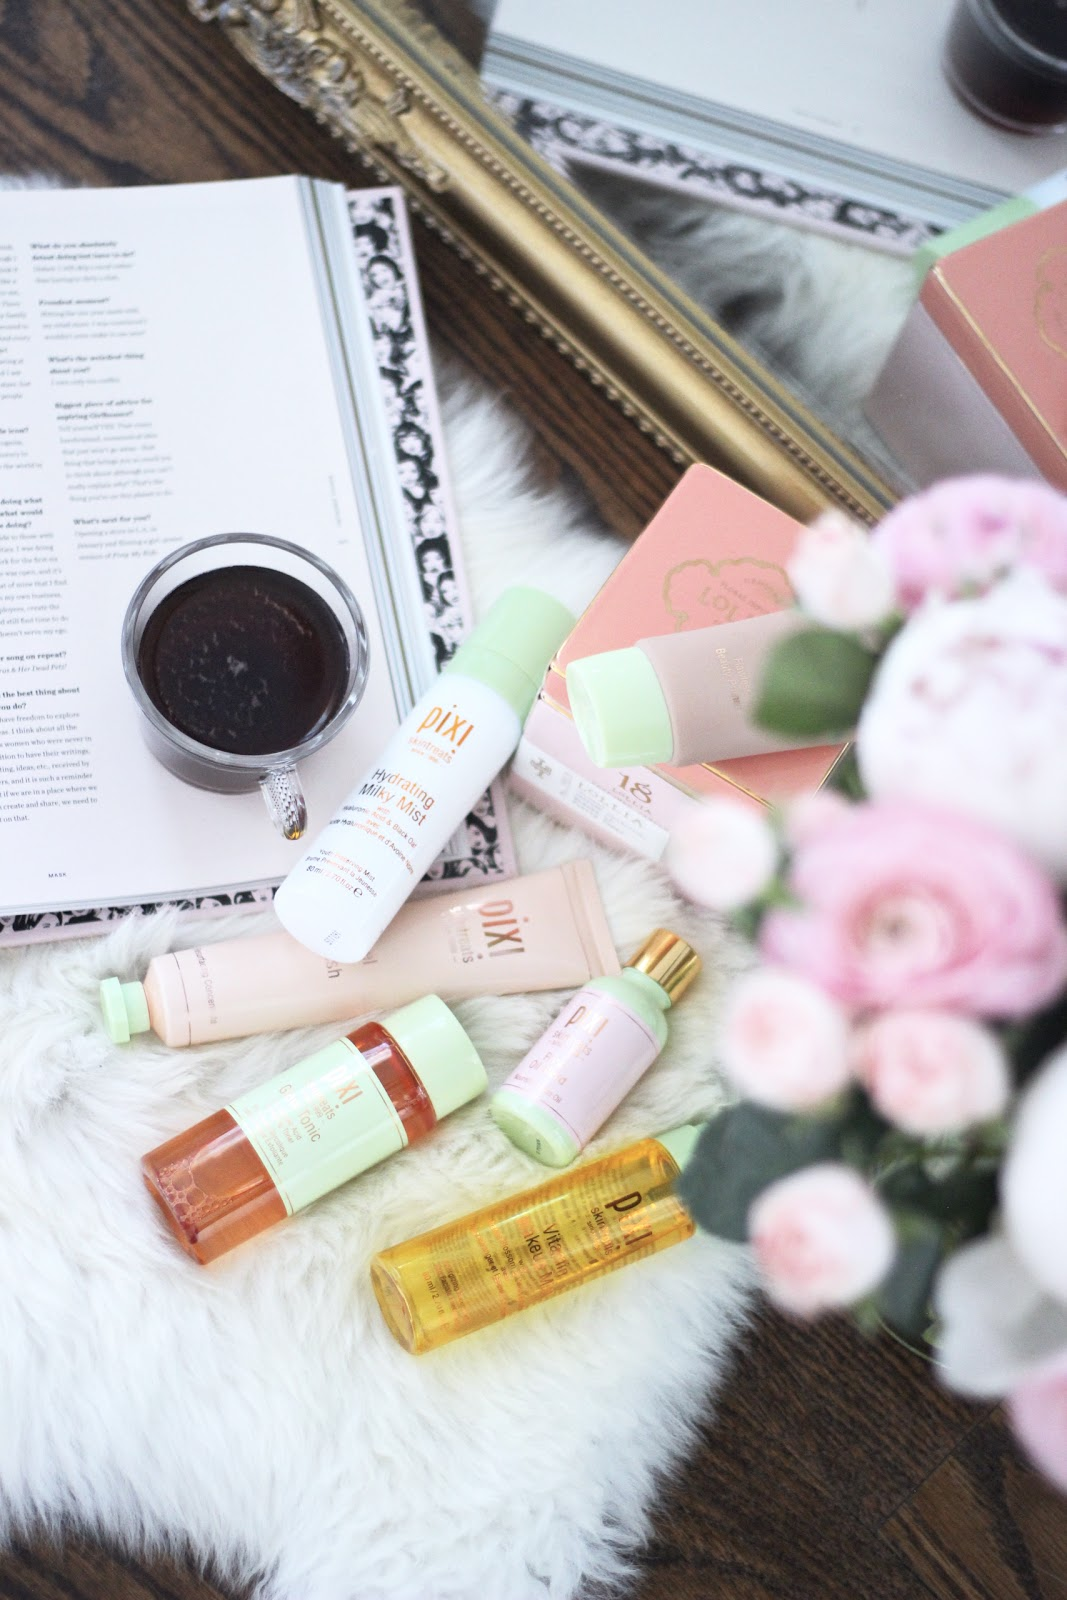 Pixi Beauty Review: Glow Tonic Hydrating Milky Mist Flawless Beauty Primer mixed with Rose Oil Blend Vitamin Wake Up Mist Endlessly Silky Eye Pen- Bronzebeam Beauty Bronzer- Summertime